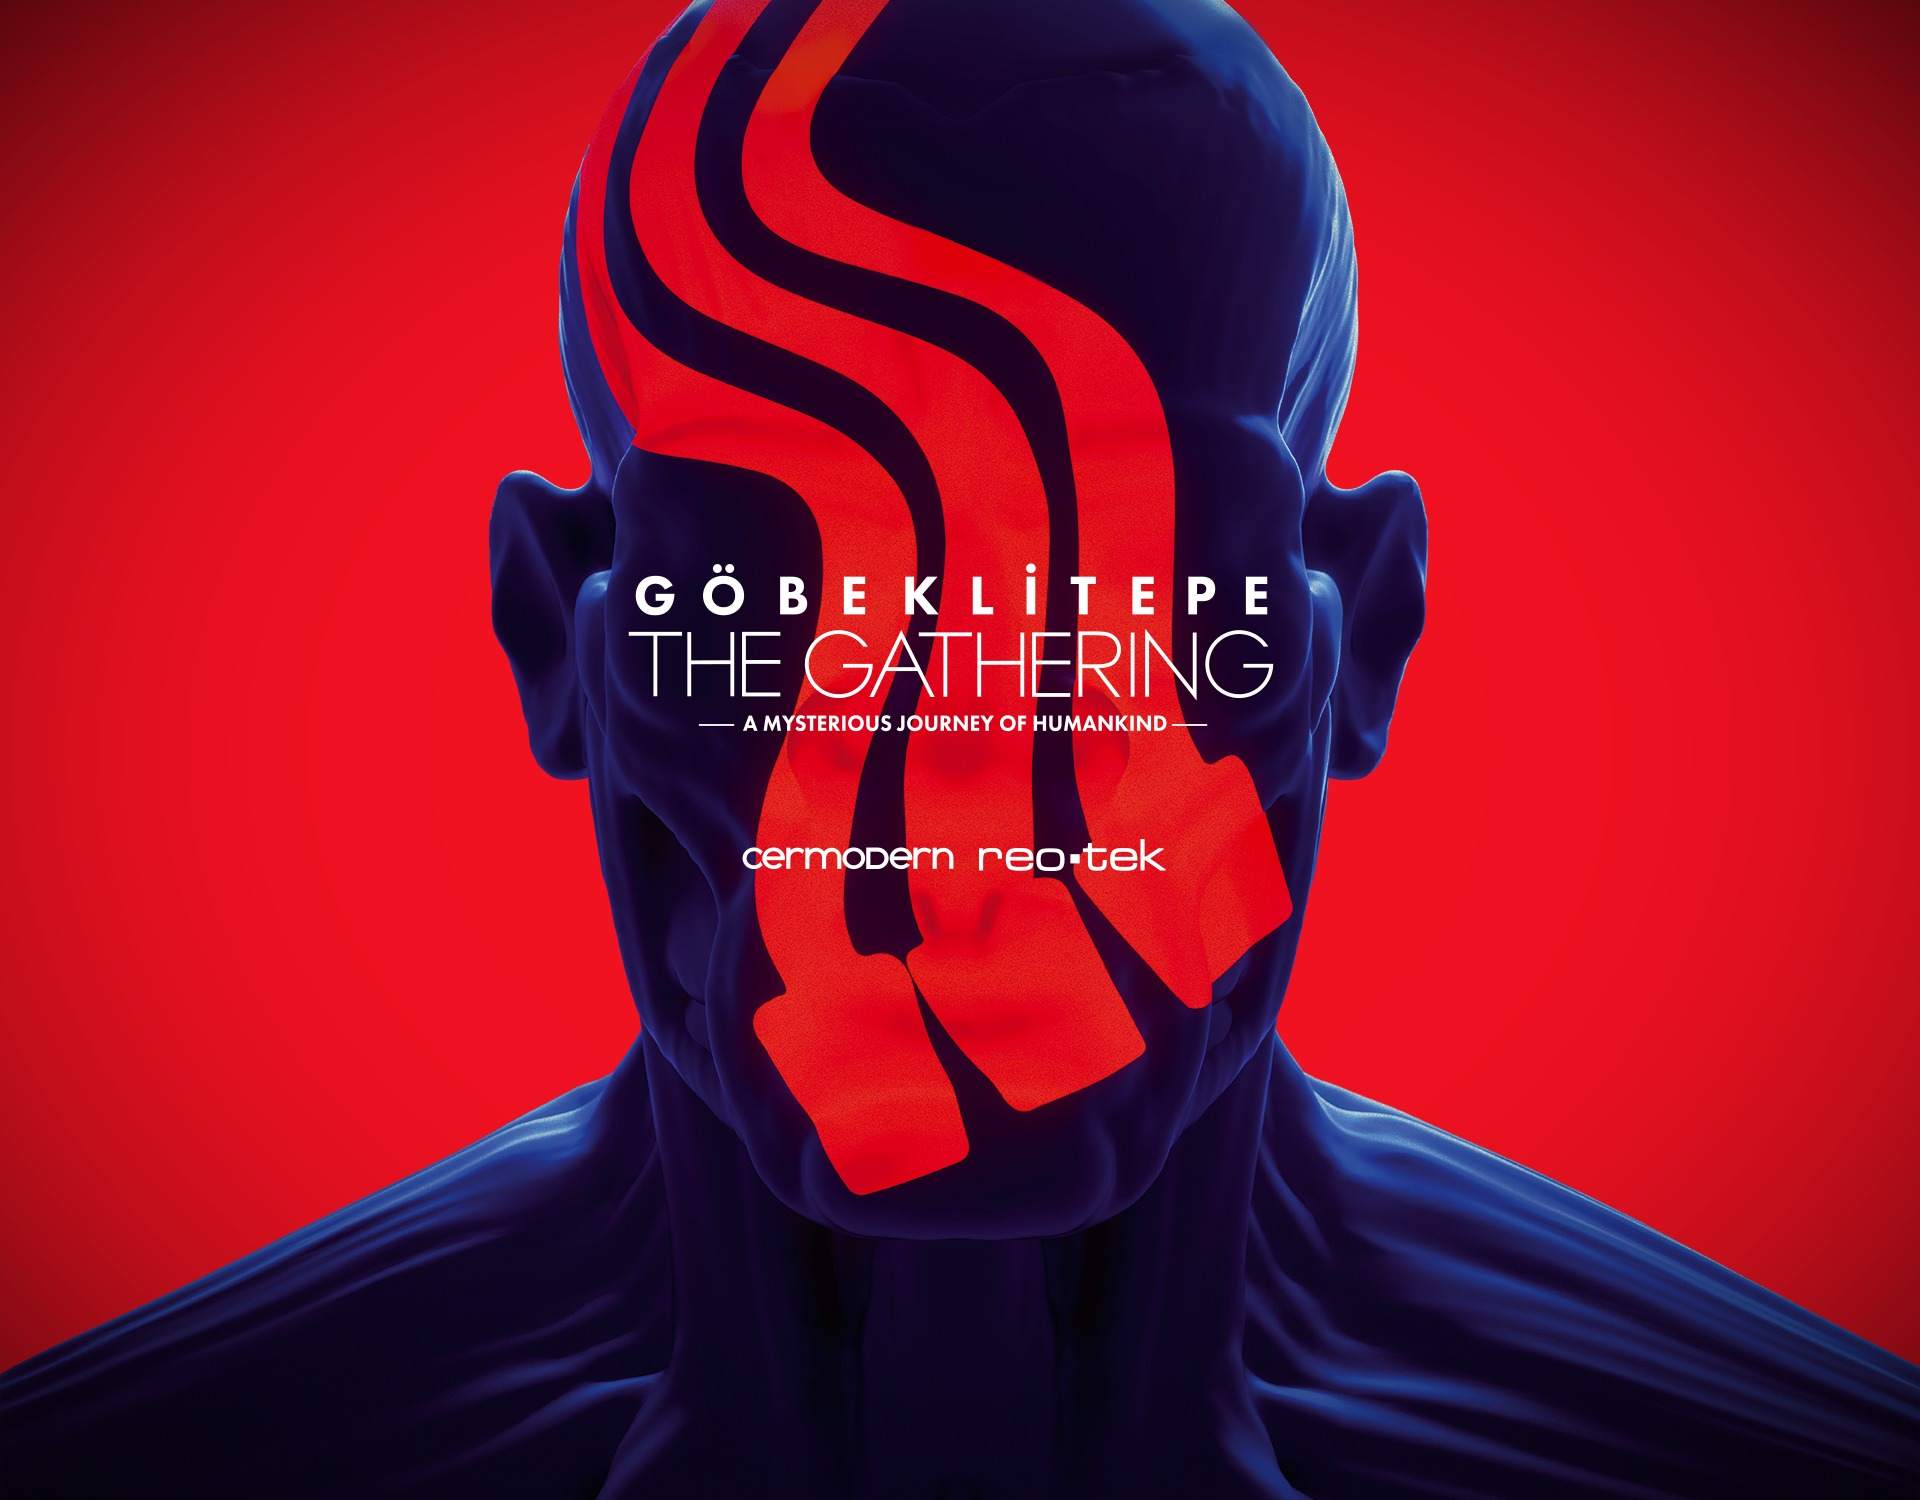 Gobeklitepe The Gathering Poster